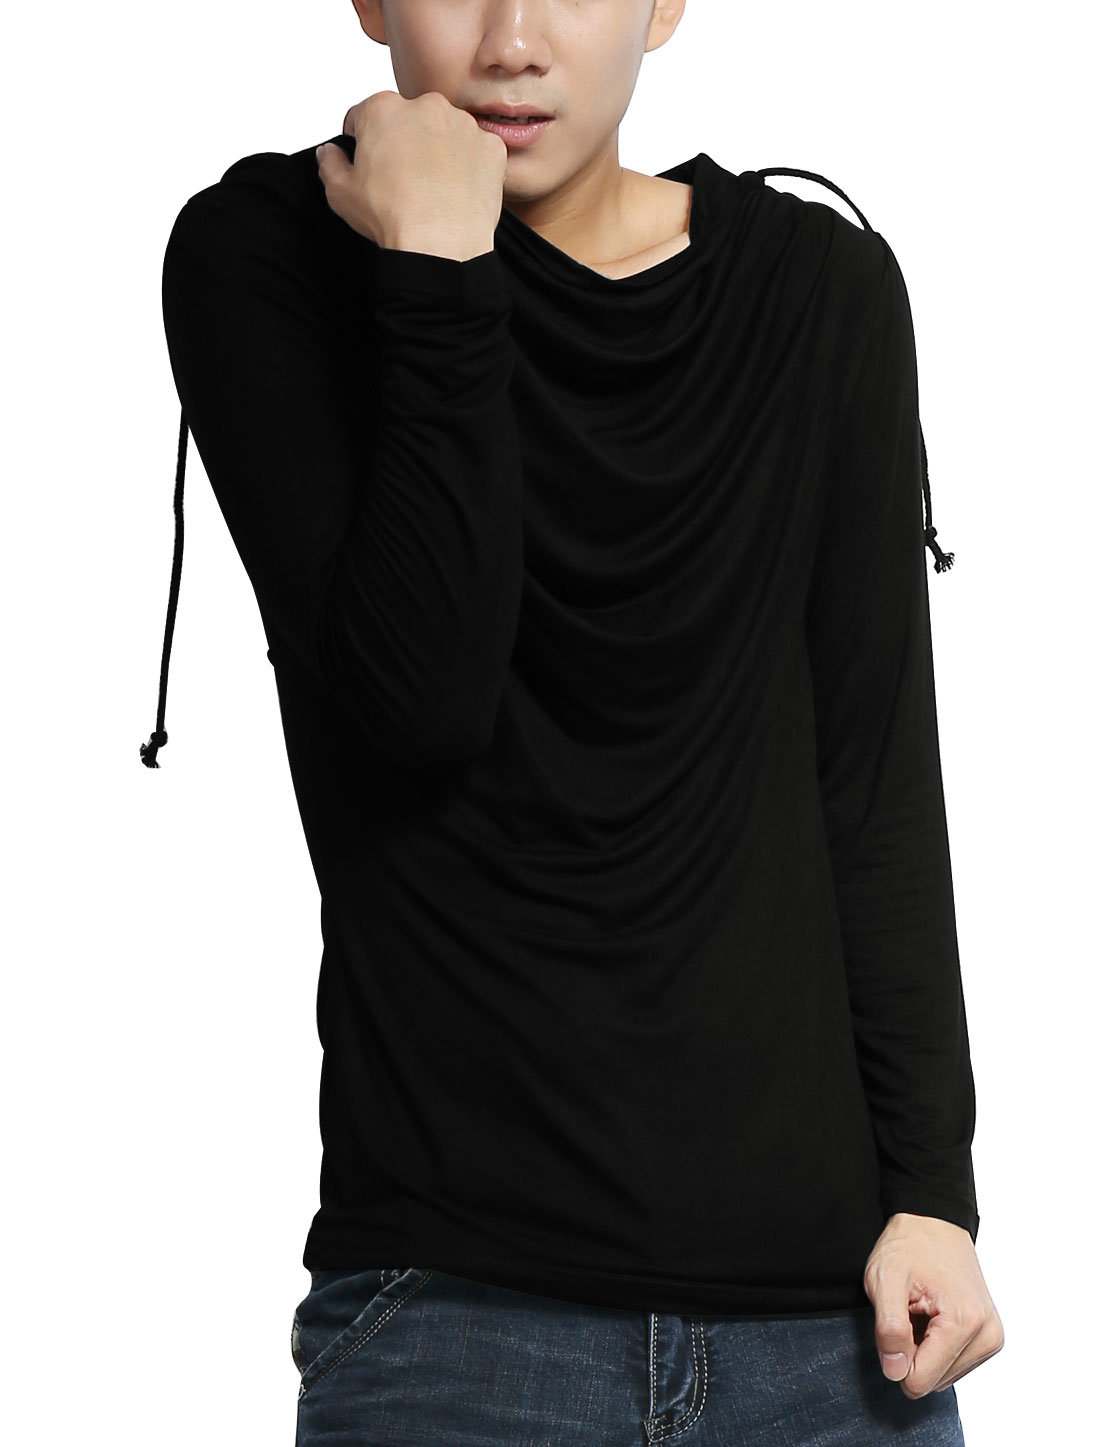 Men Stylish Black Cowl Neck Stretchy Simple Style Leisure Hooded Shirt M